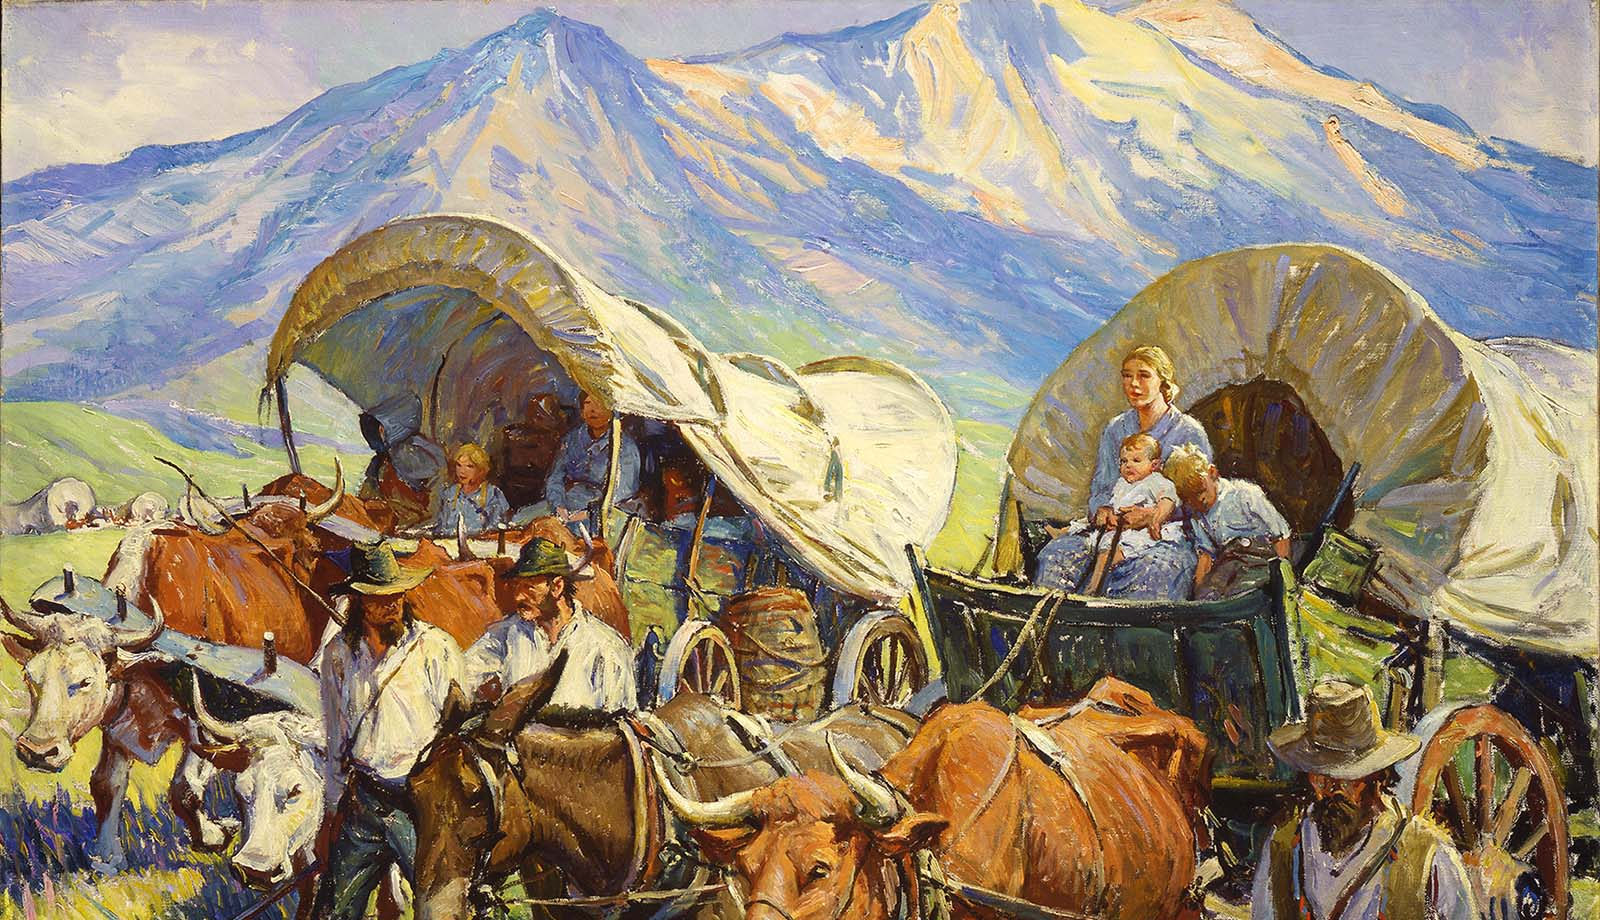 """W.H.D. Koerner (1878–1938). """"The Road to Oregon (Lone Travel, or Travel in Groups of a Few, as Andy Had Known it, Was Practically a Thing of the Past),"""" 1933. Oil on canvas. Gift of Ruth Koerner Oliver. 6.92.2 (detail)"""